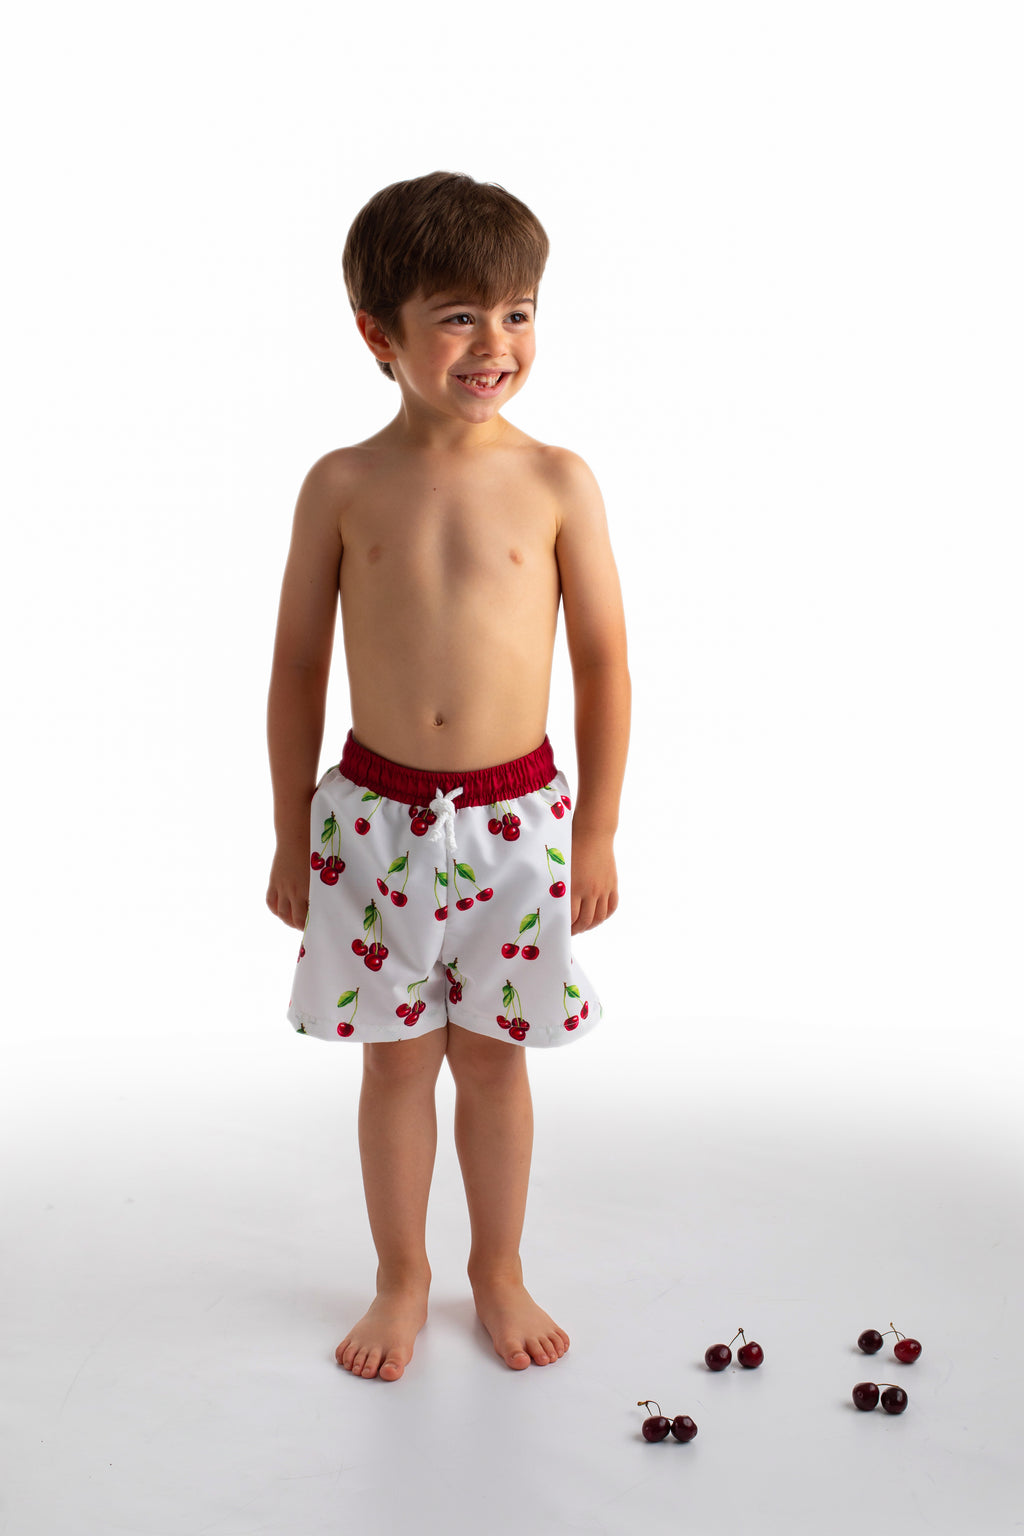 SS21 Meia Pata Boys Cherries Swimming Trunks